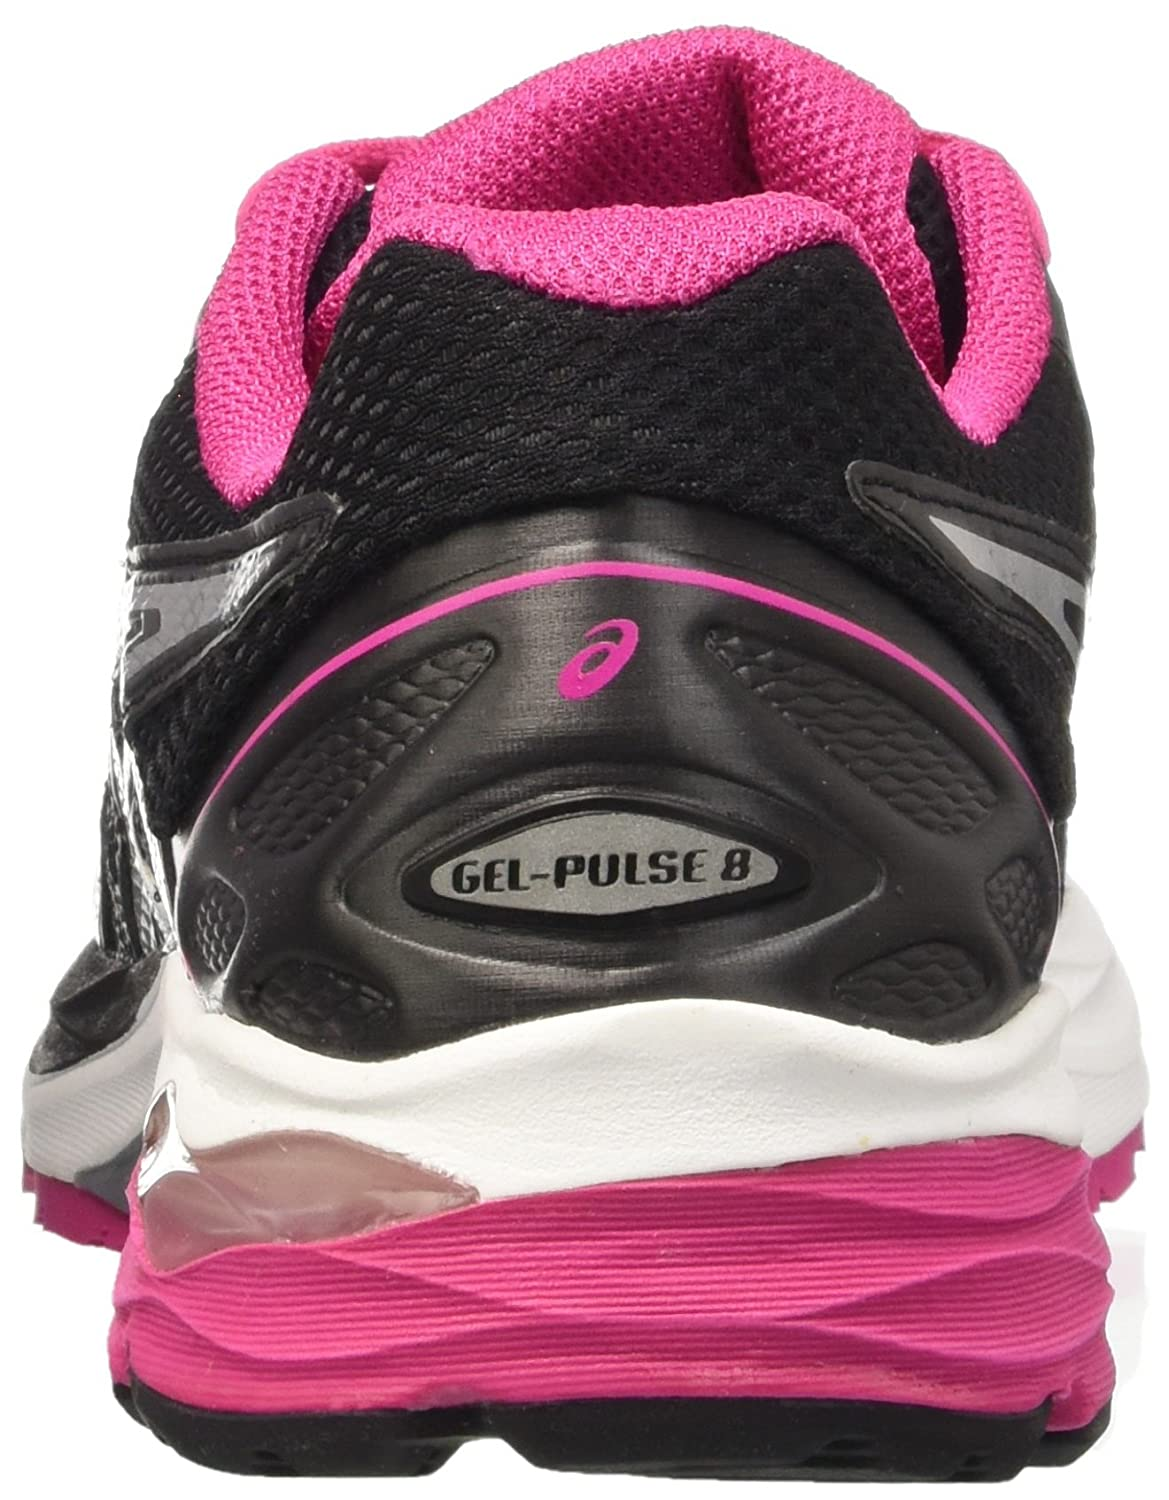 db50985b3 Women's Asics Gel Pulse 8 Womens Running Shoes Cushioned Trainers Ladies  Pink